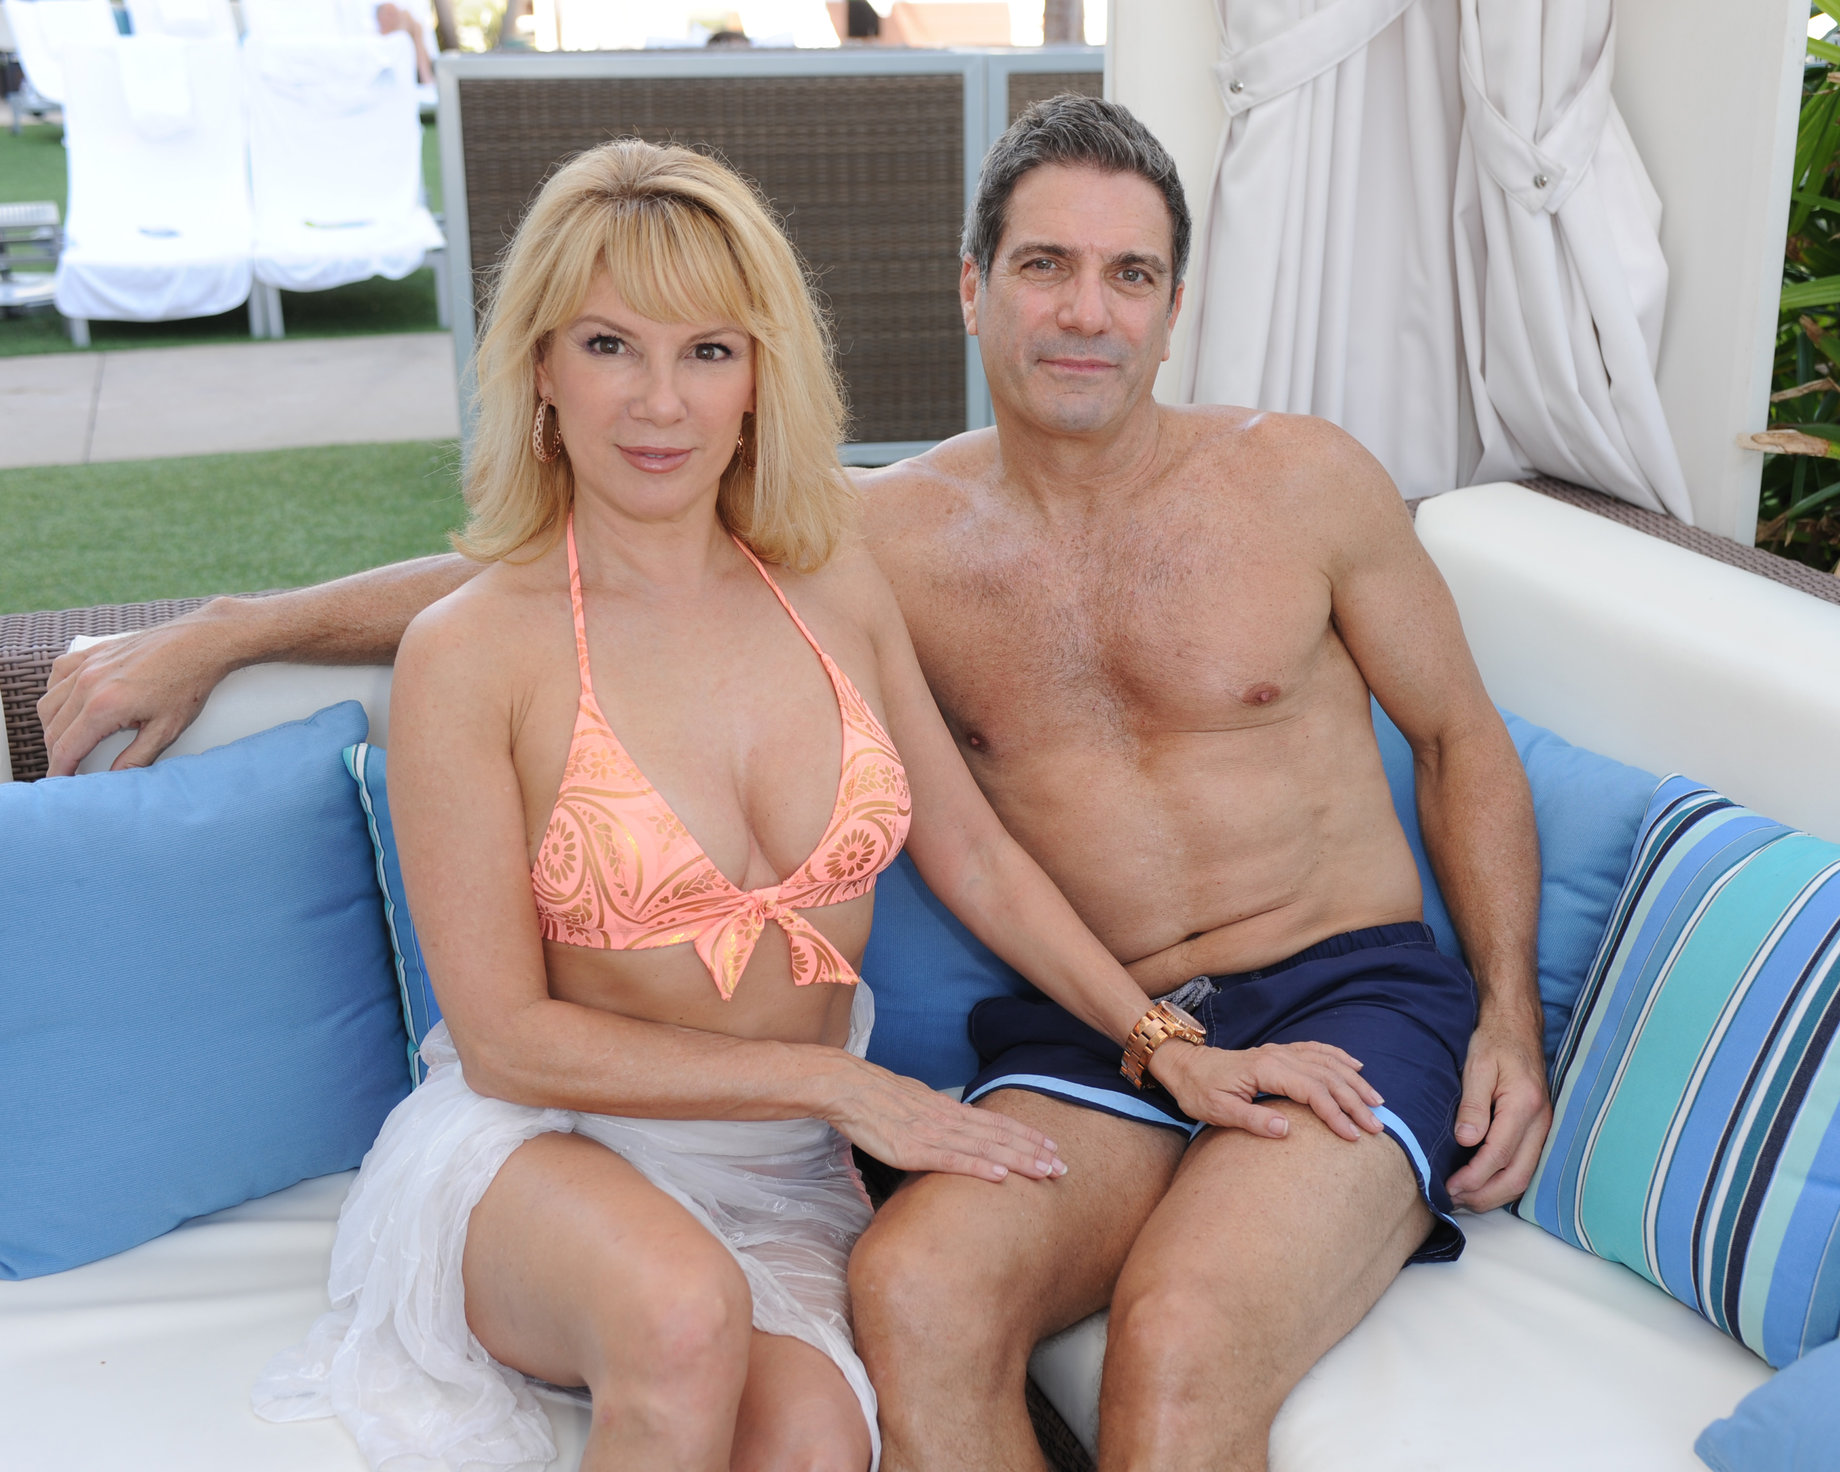 Every Real Housewives Husband, Ranked From Best To Worst